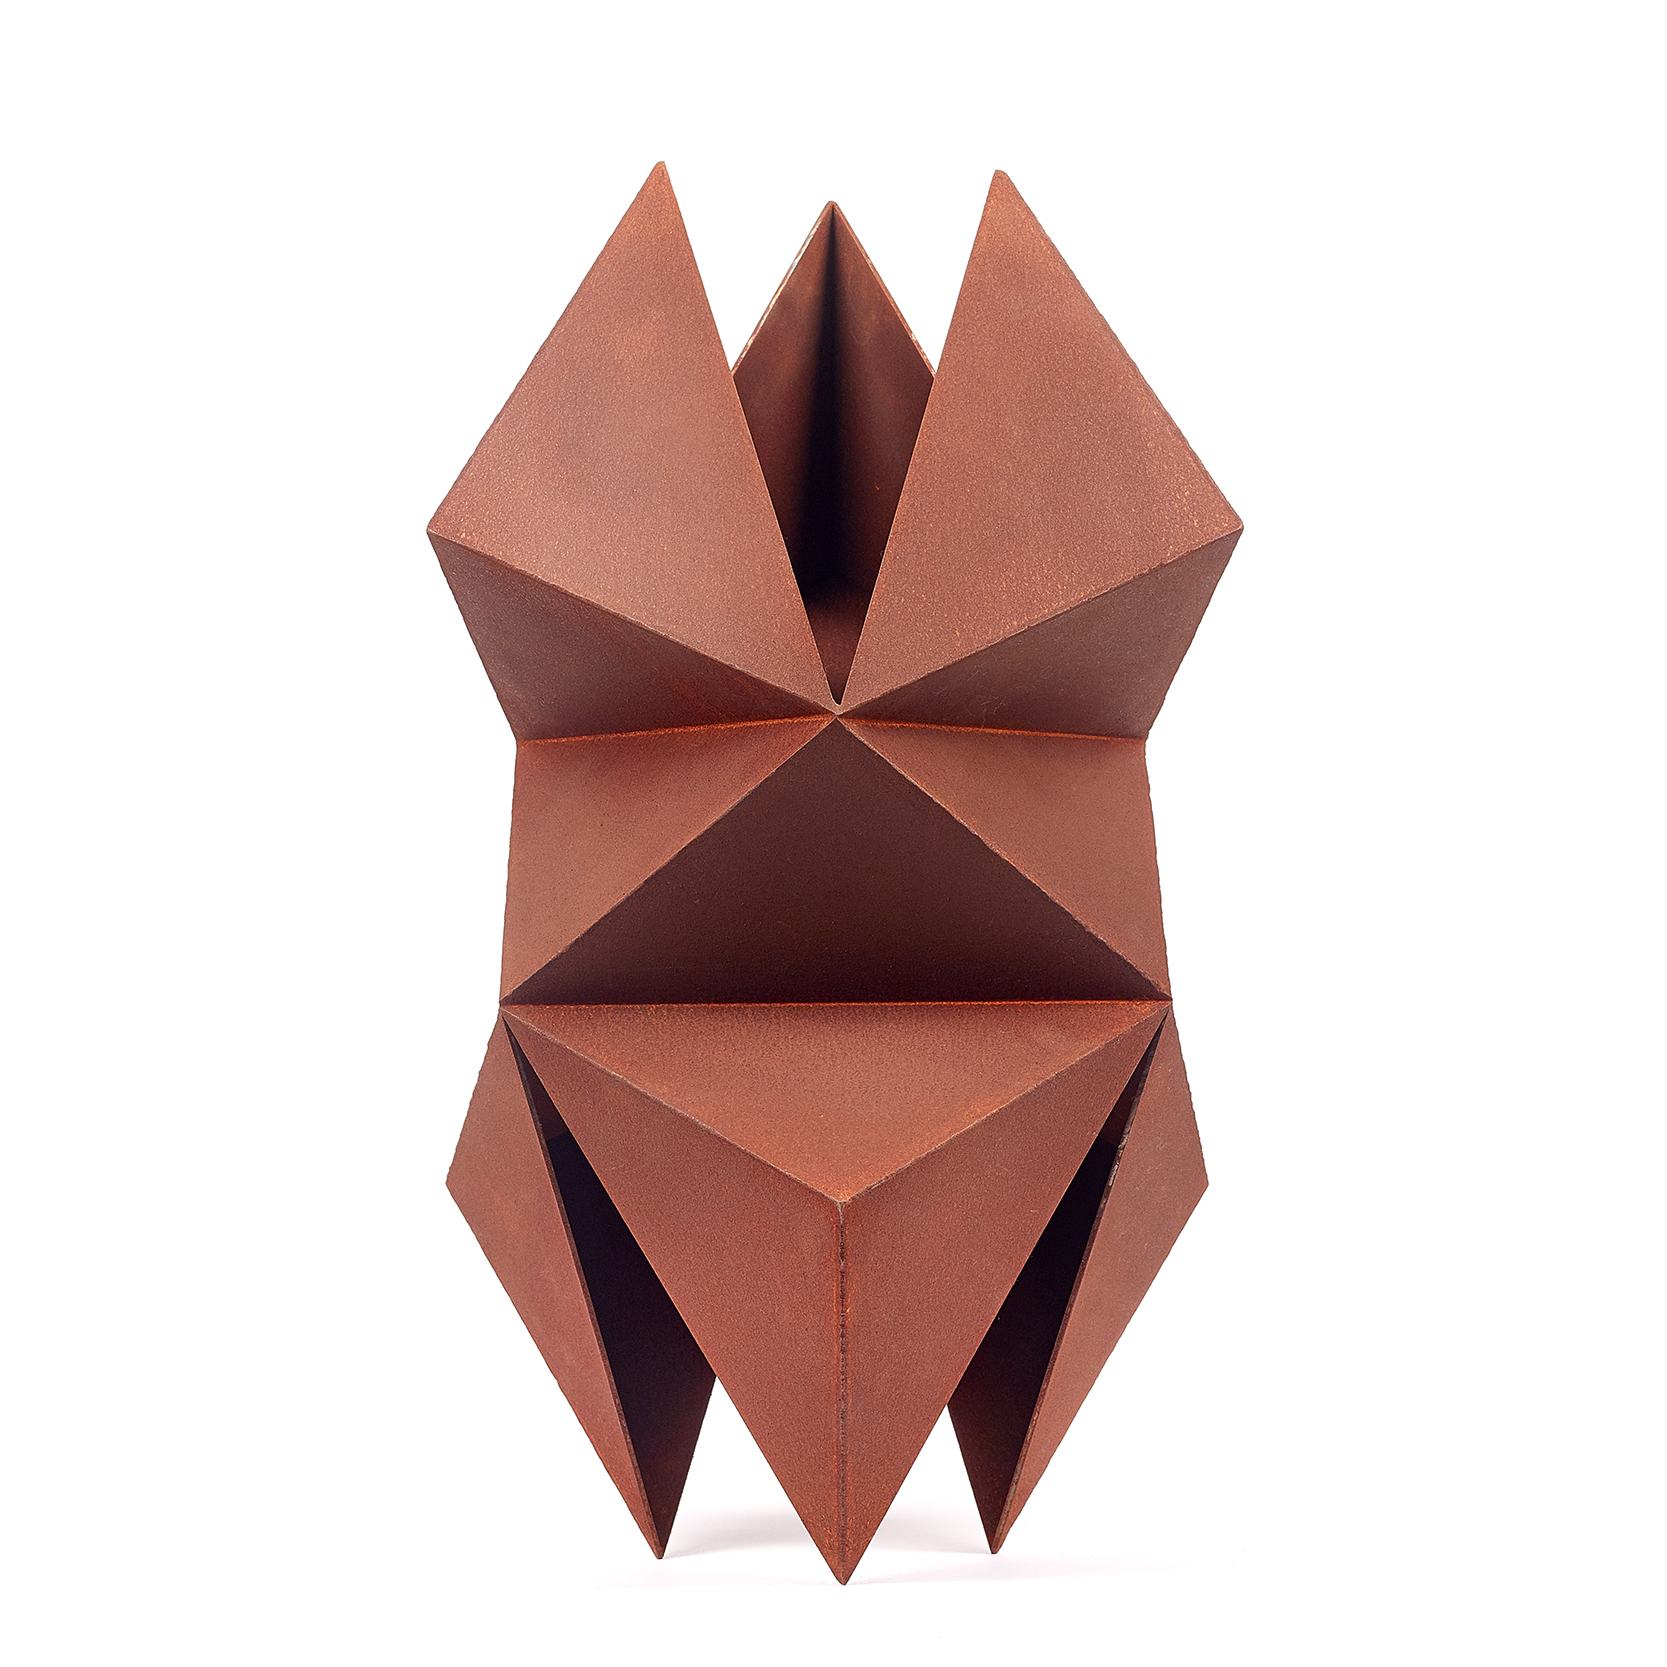 2018_04_08_will_nash_corten_isosceles_002_int_web_square.jpg